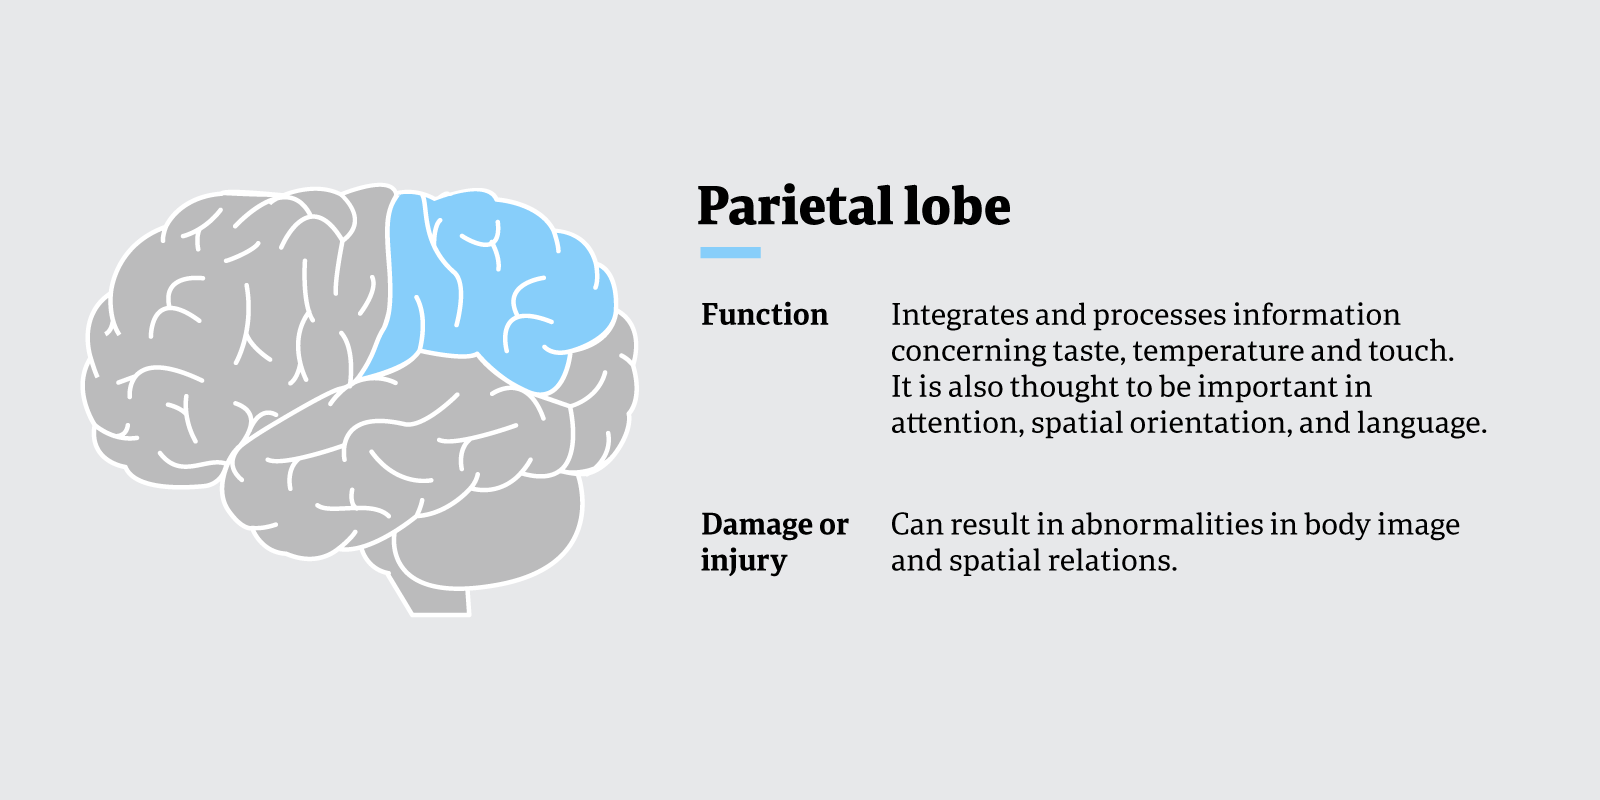 Function of the parietal lobe